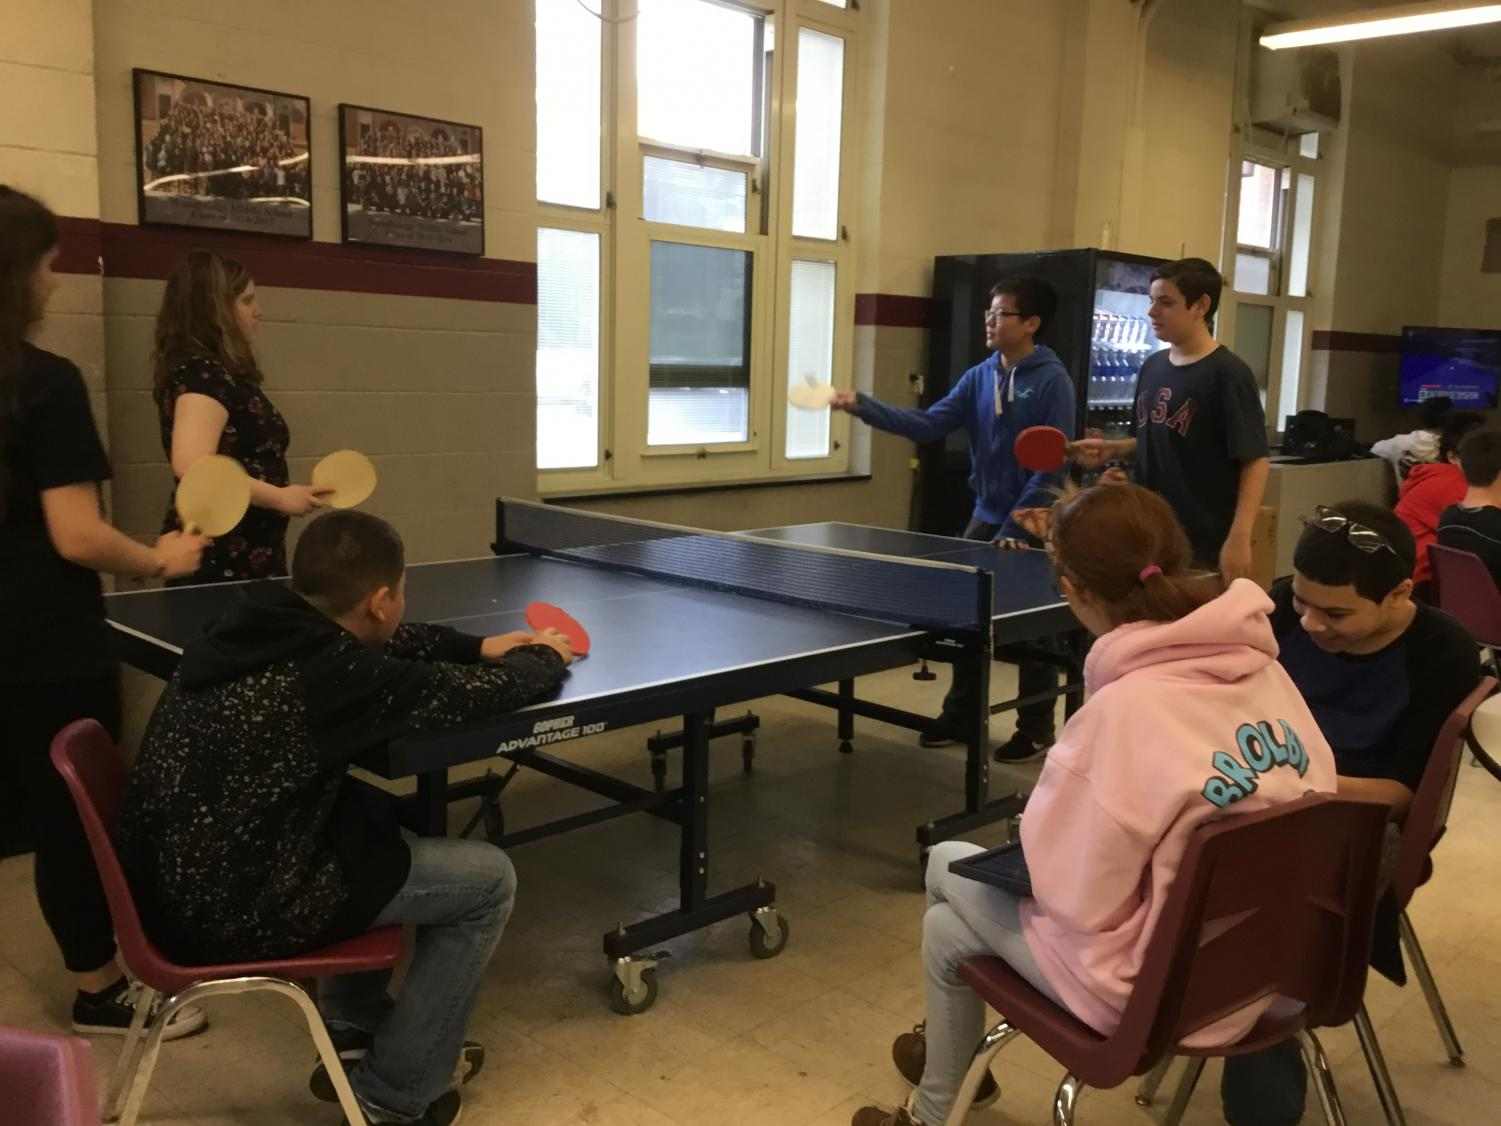 8th graders play ping pong during their gym.